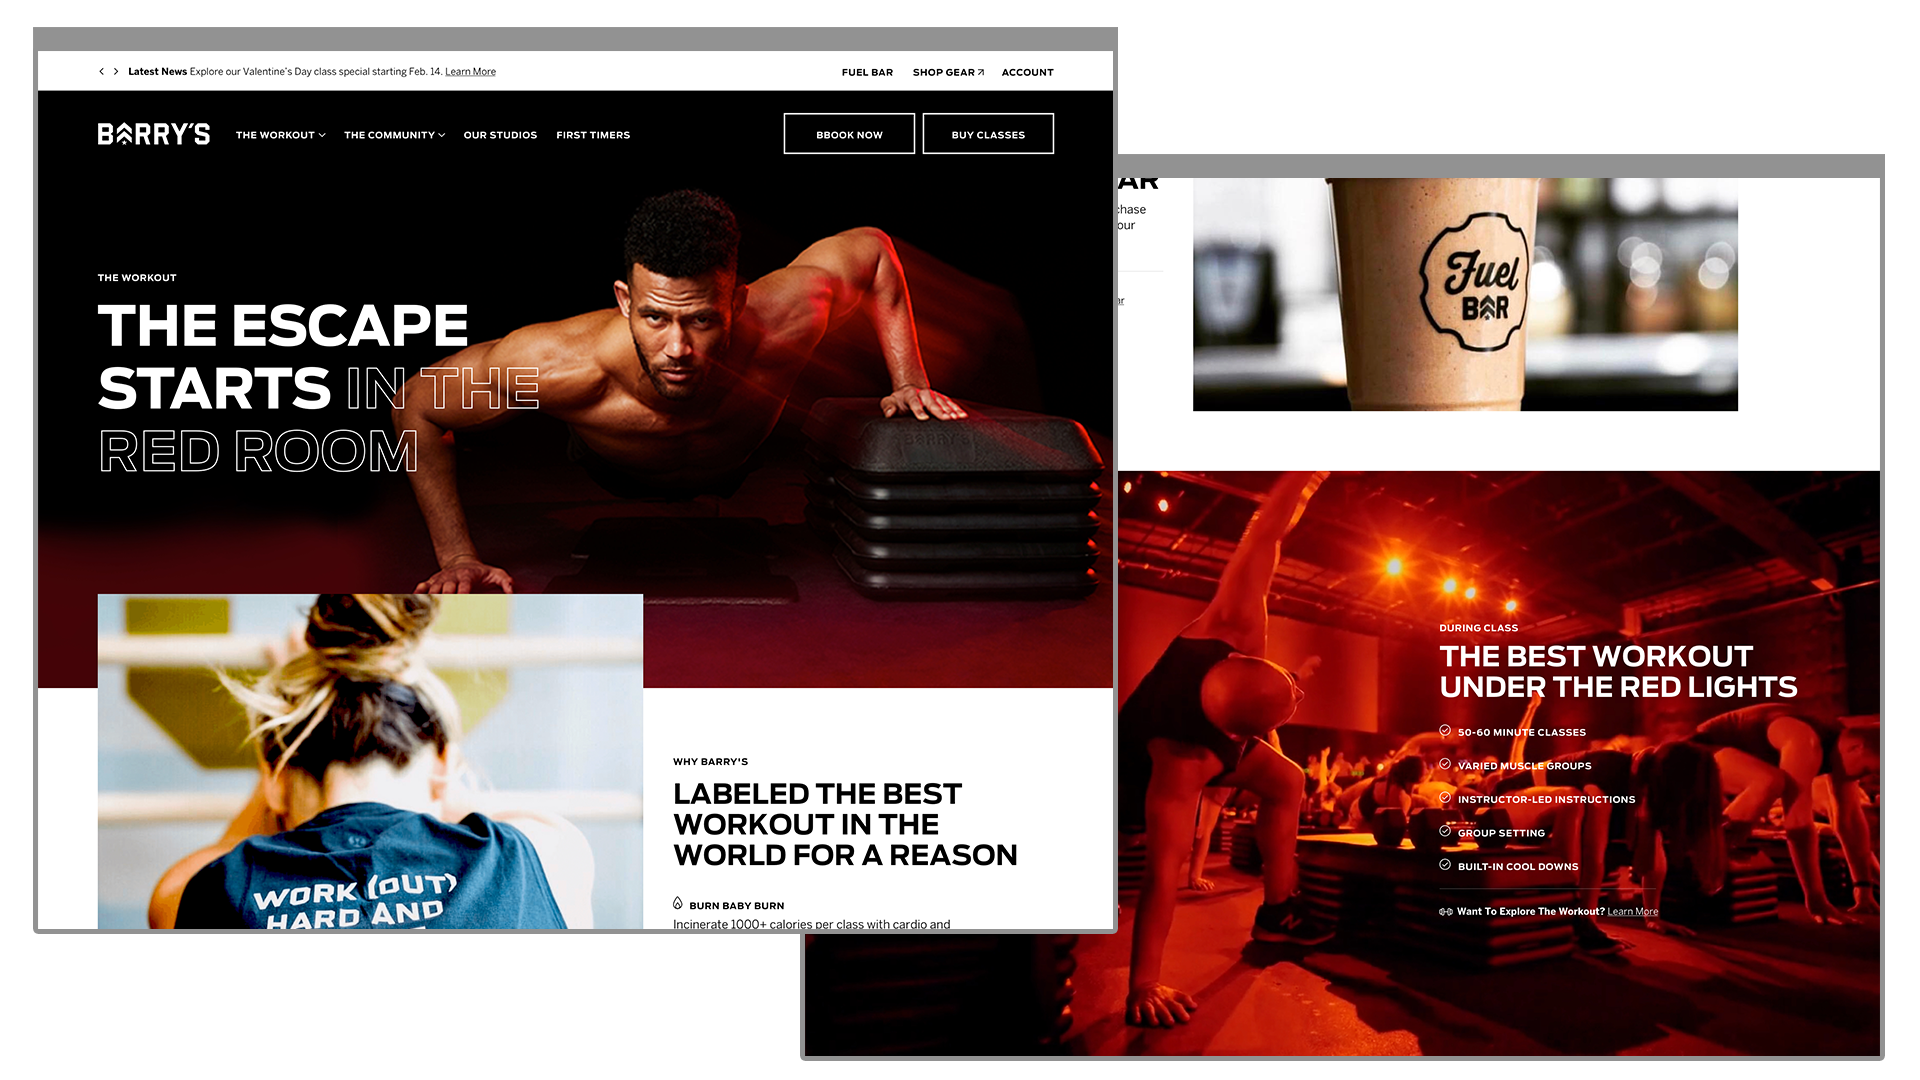 Barry's Bootcamp The Workout and First Timers Page Mockups